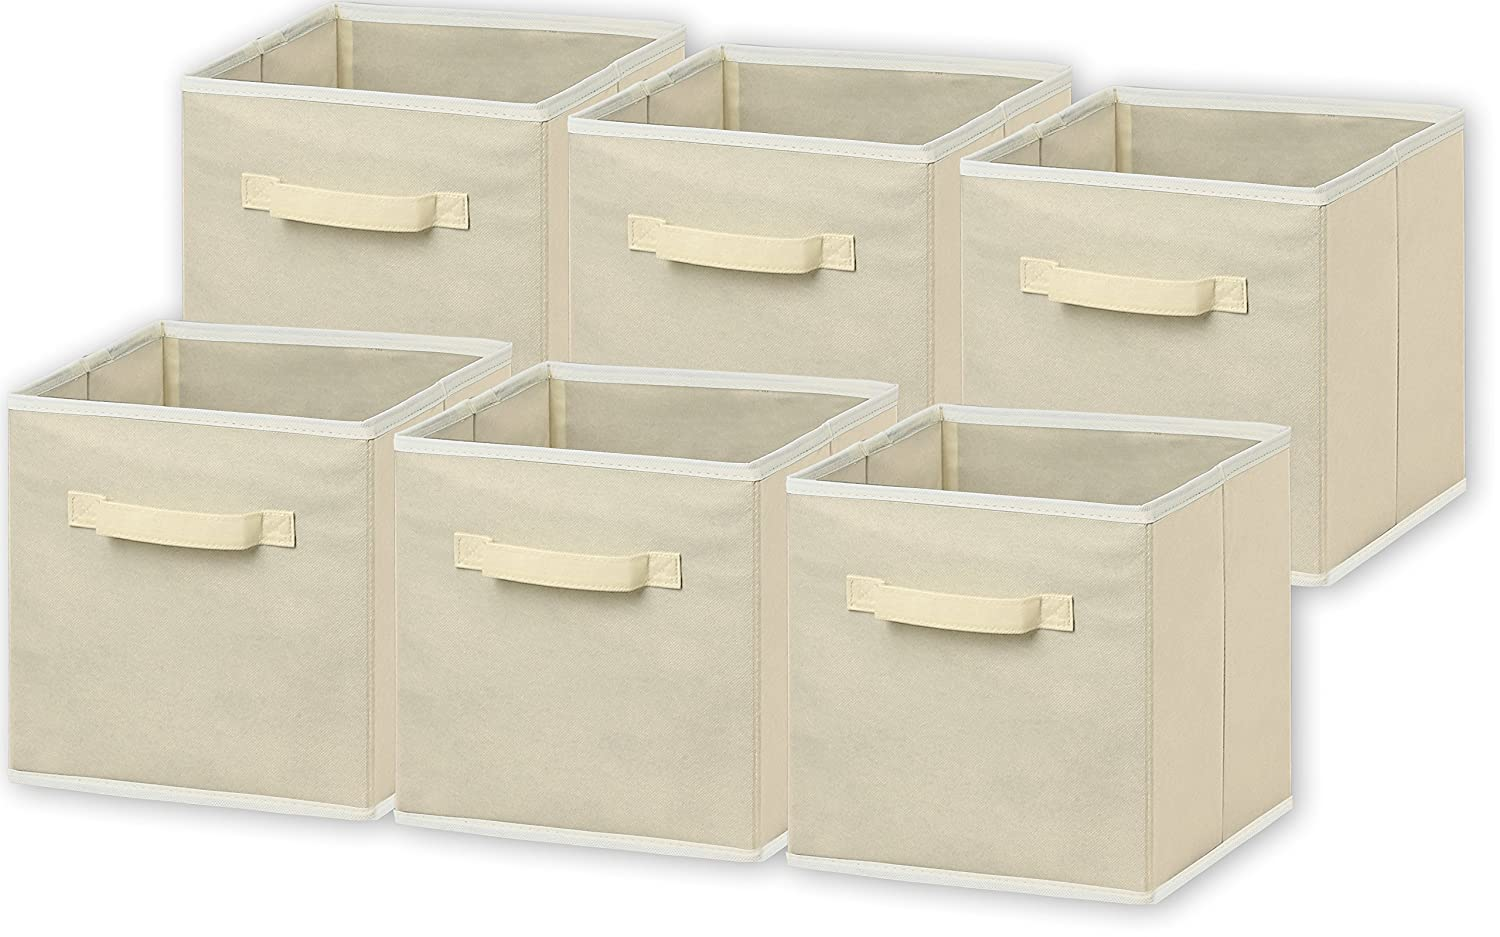 "6 Pack - SimpleHouseware Foldable Cloth Storage Cube Basket Bins Organizer, Beige (11"" H x 10.25"" W x 10.25"" D) Simple Houseware BO-001-1"